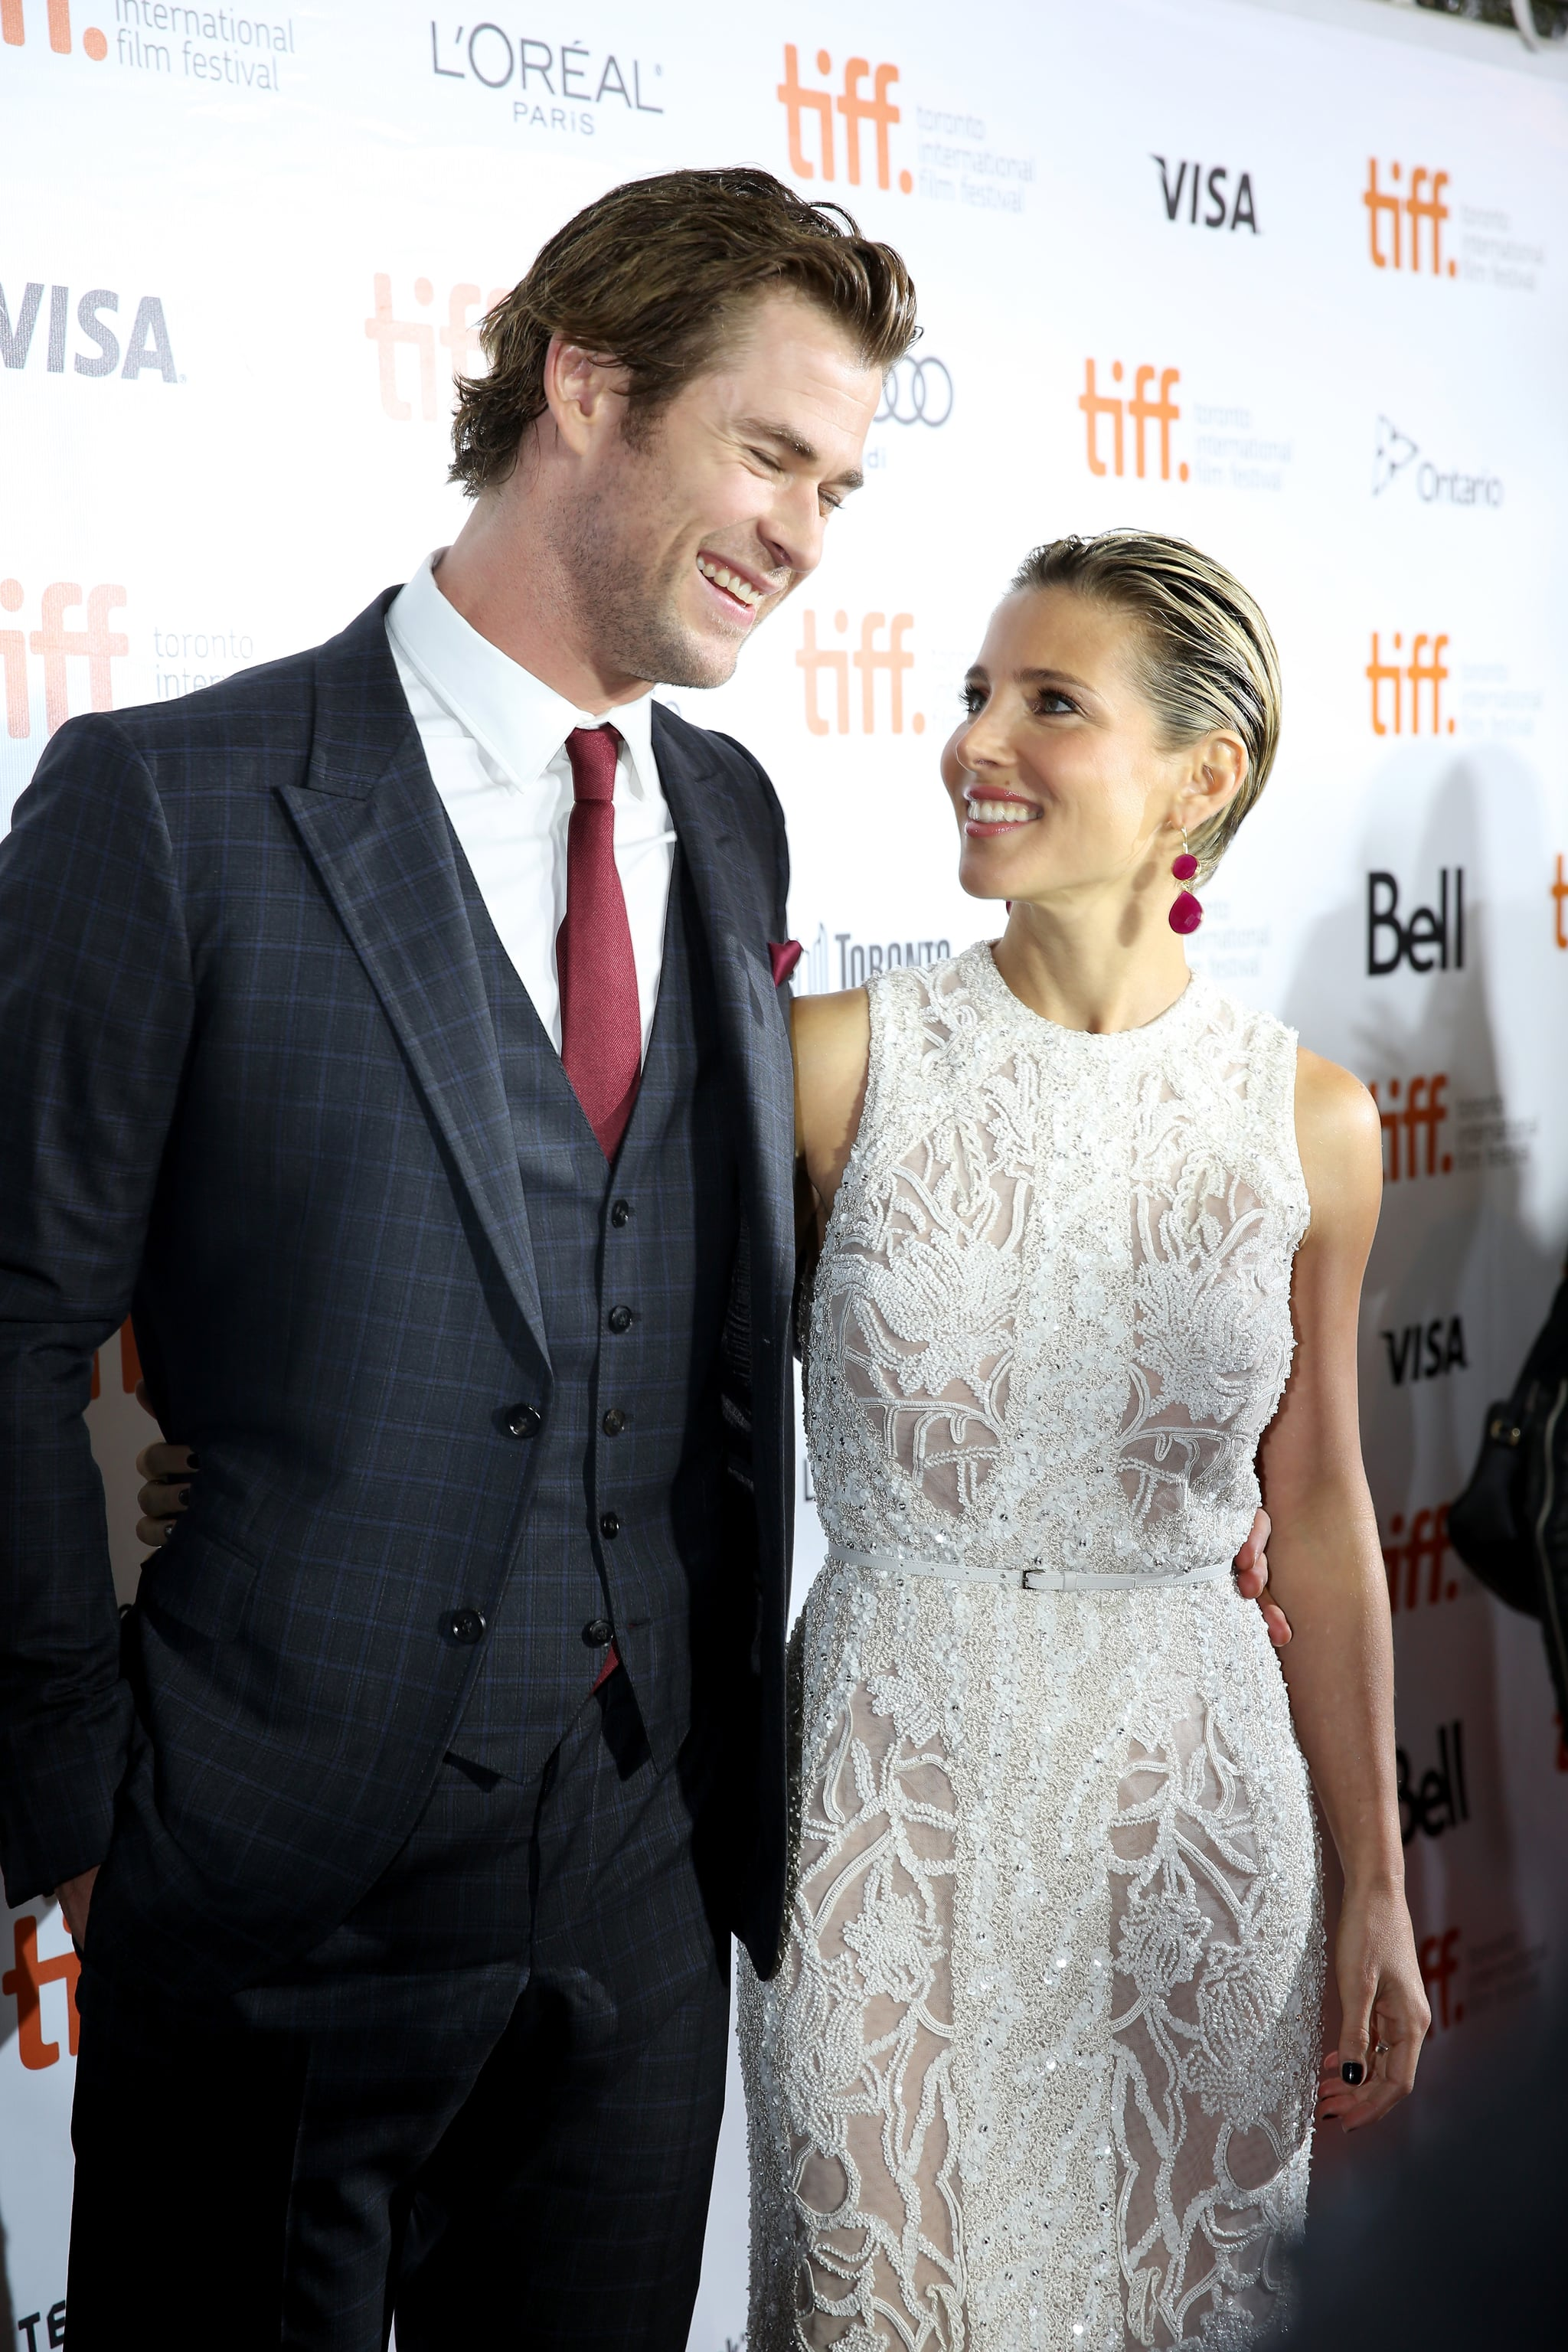 Parents Chris Hemsworth and Elsa Pataky enjoyed a couple's night out.